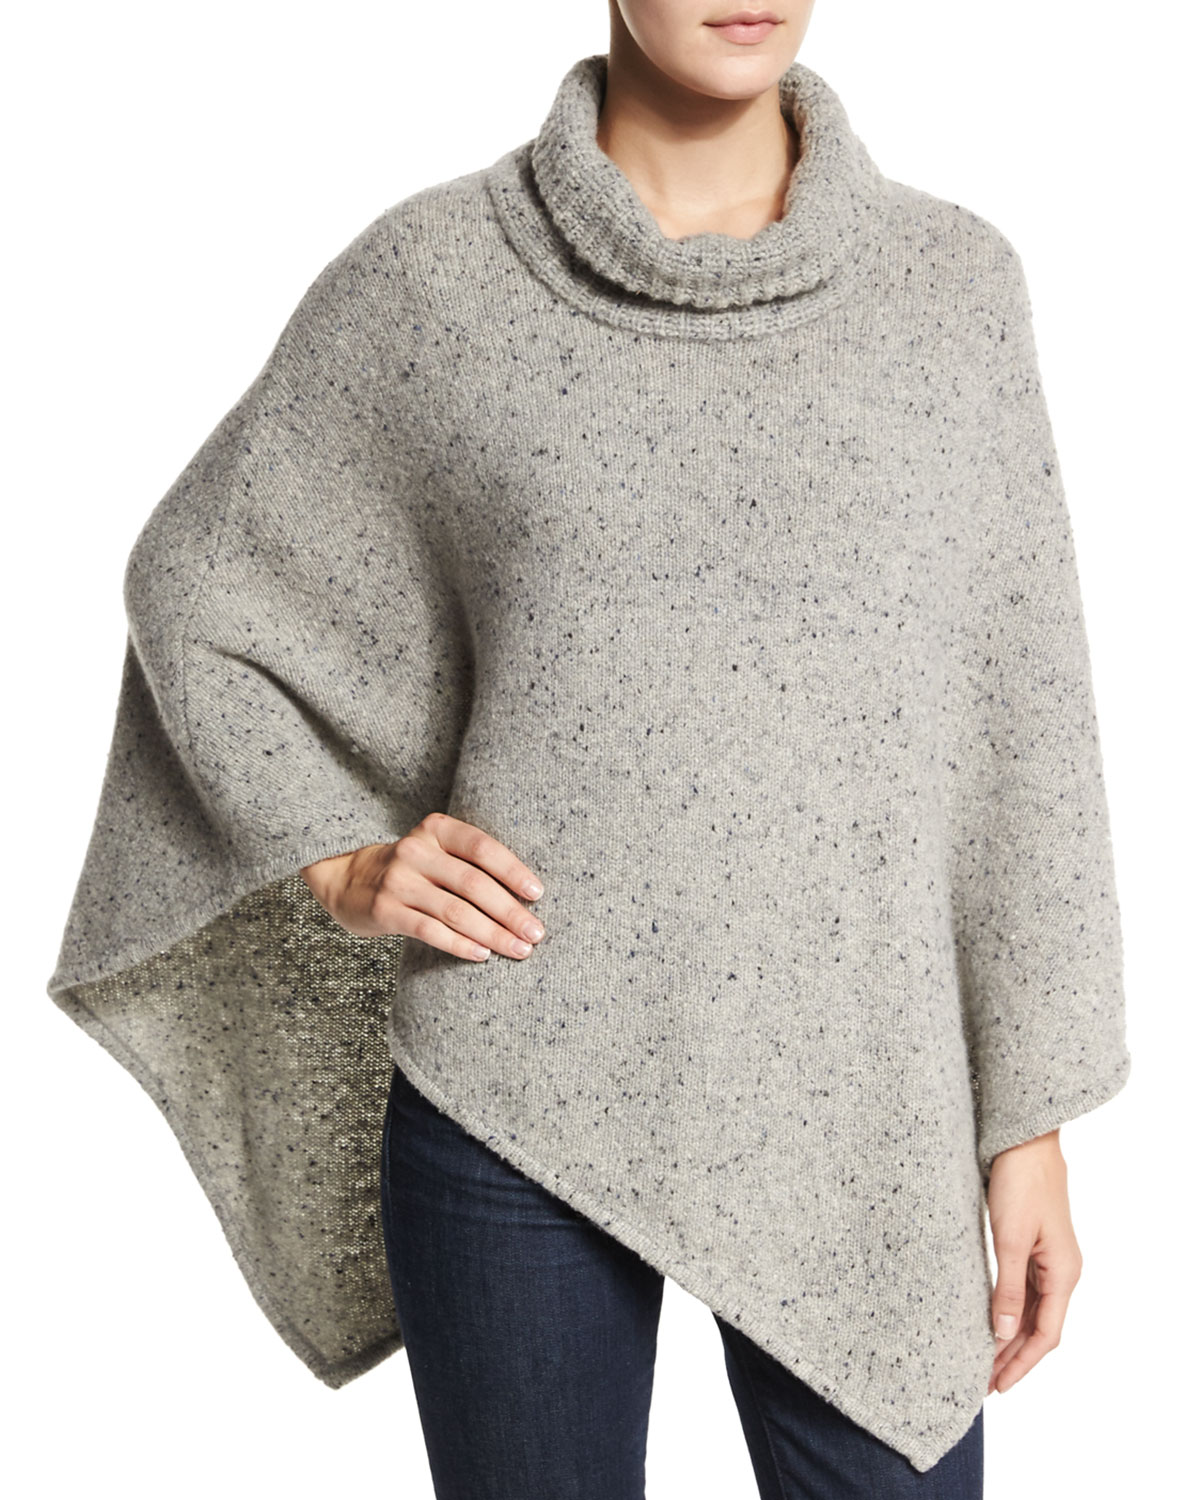 Joie Haesel Speckled Cashmere Poncho, Size: MEDIUM/LARGE, Lt Heather Gray